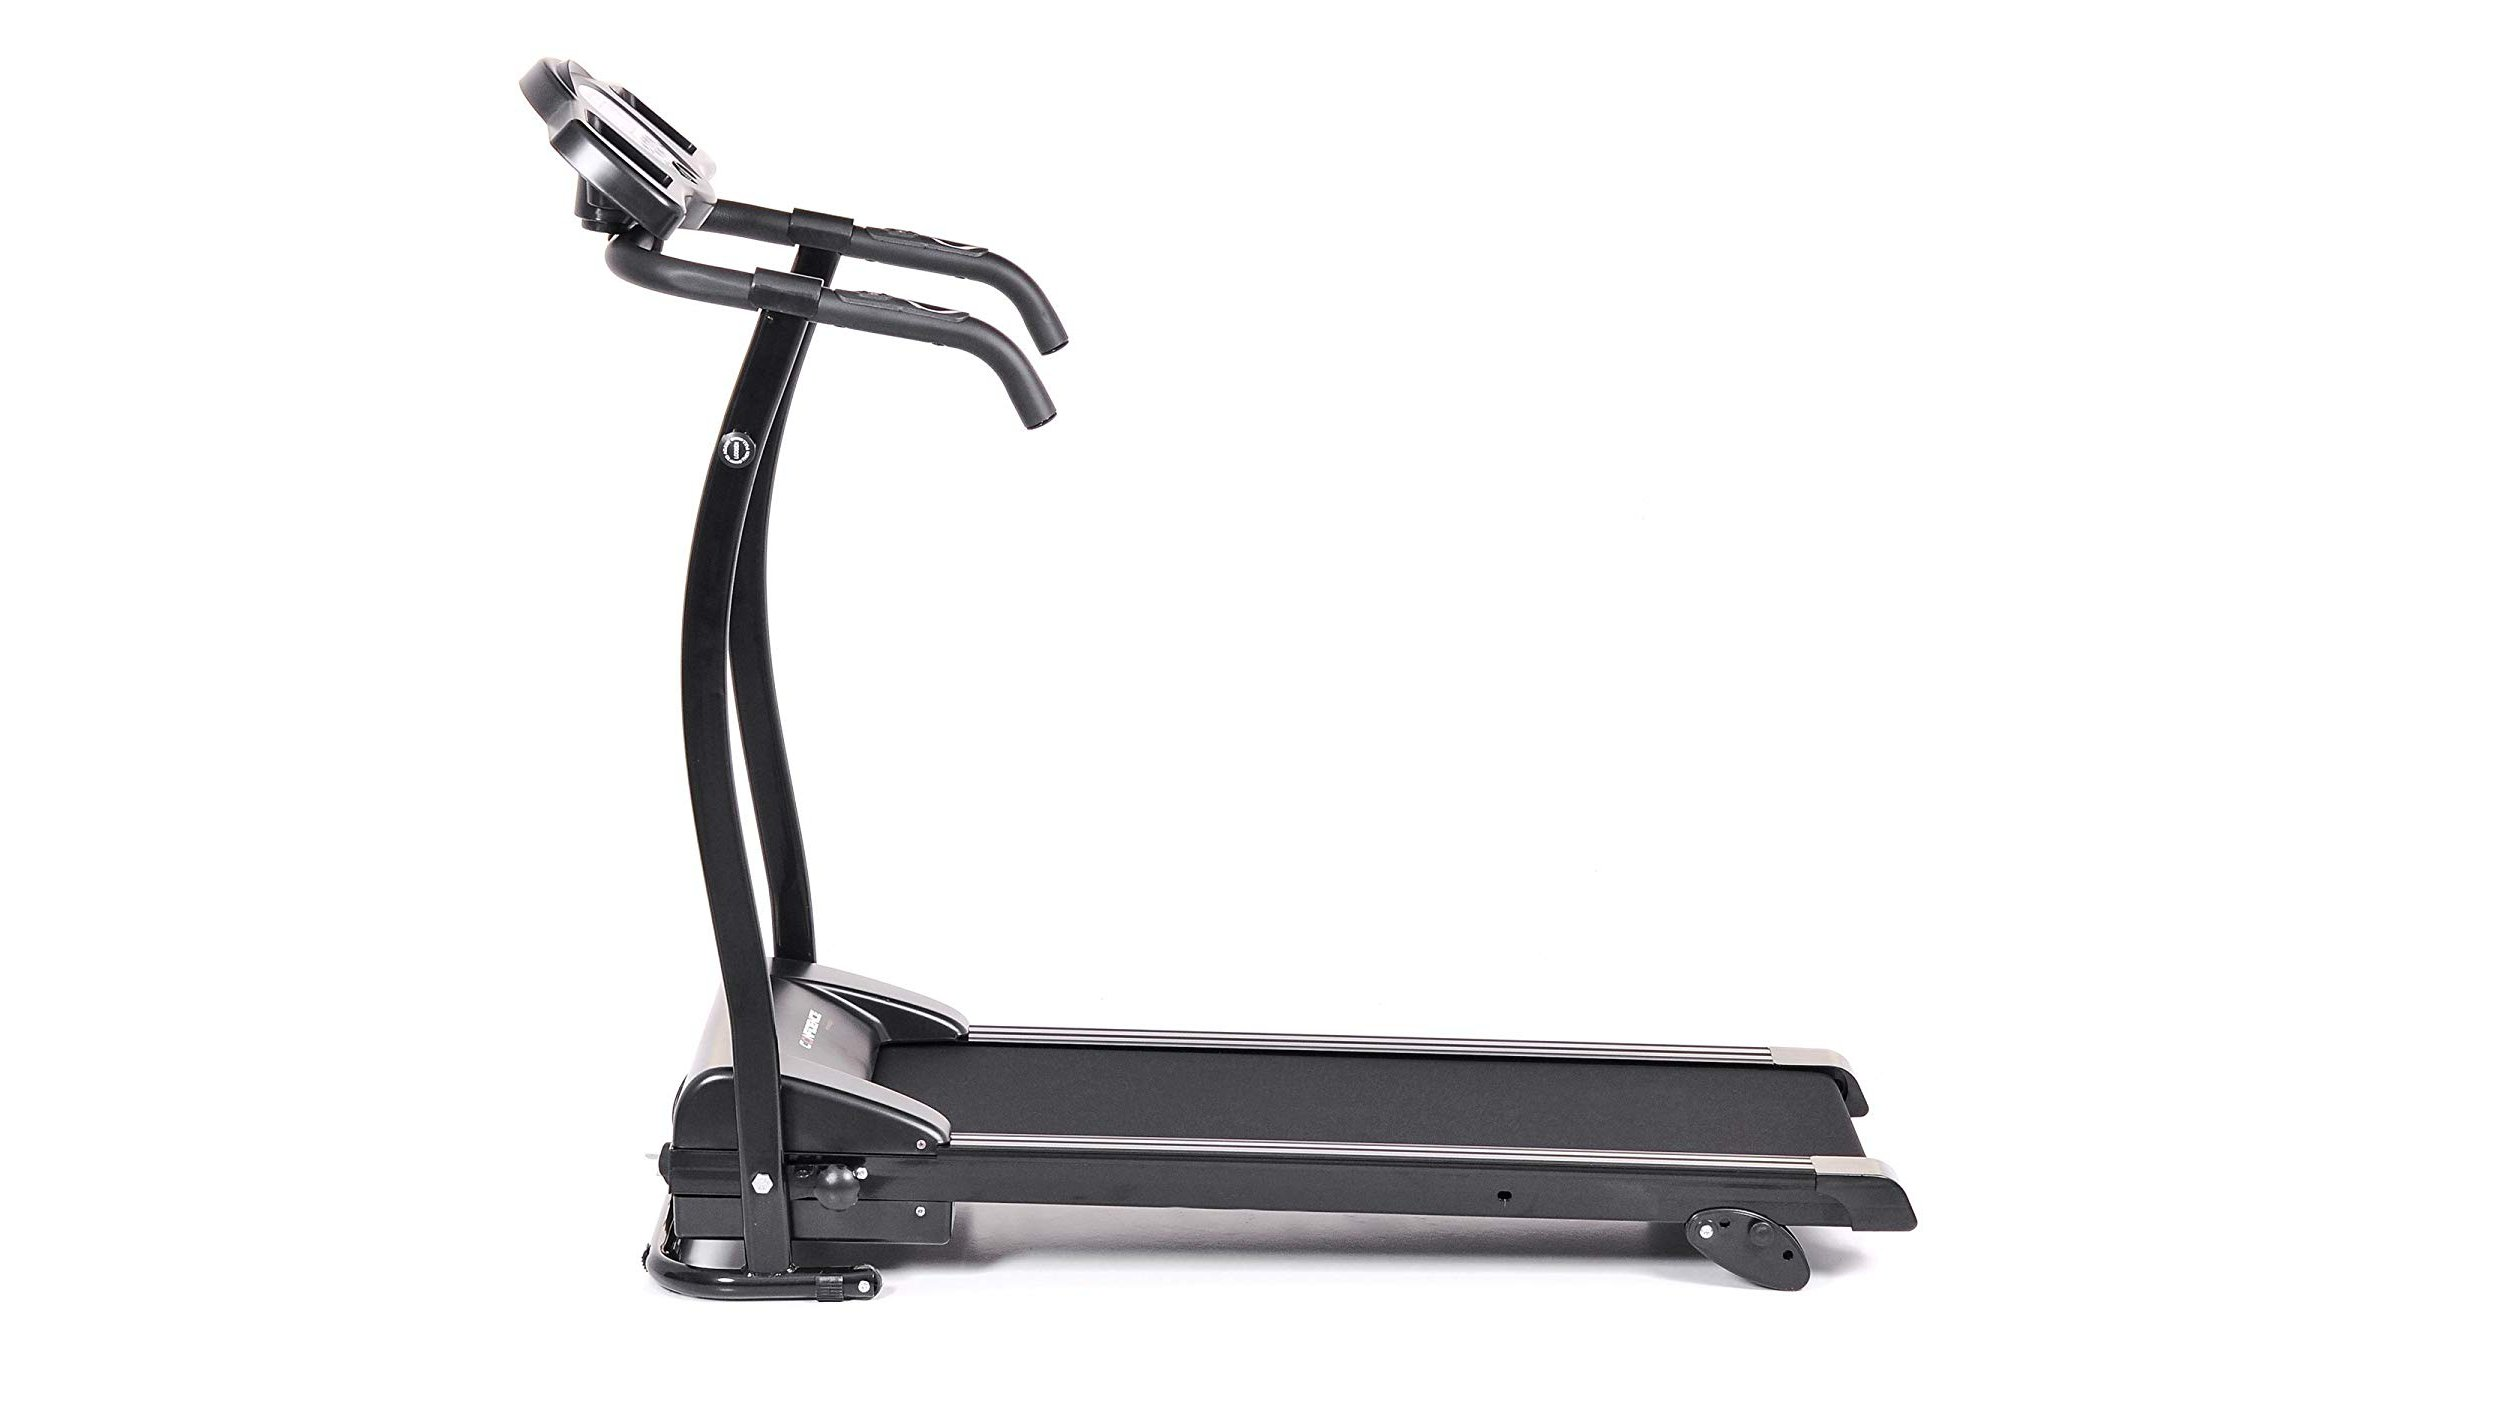 Best treadmill deals: End 2019 on a health kick with these